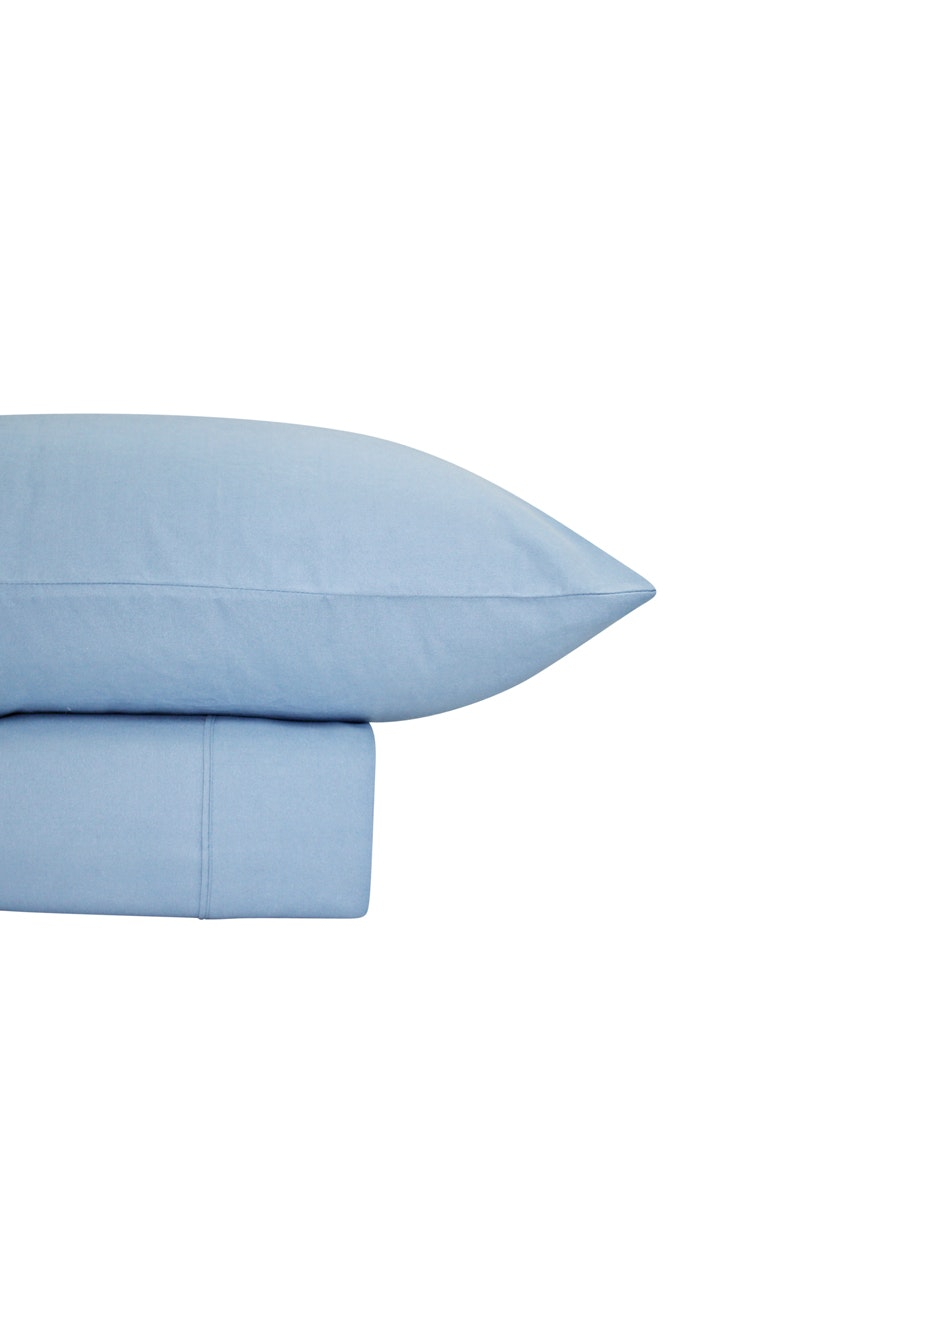 Thermal Flannel Sheet Sets - Bay Blue - Double Bed